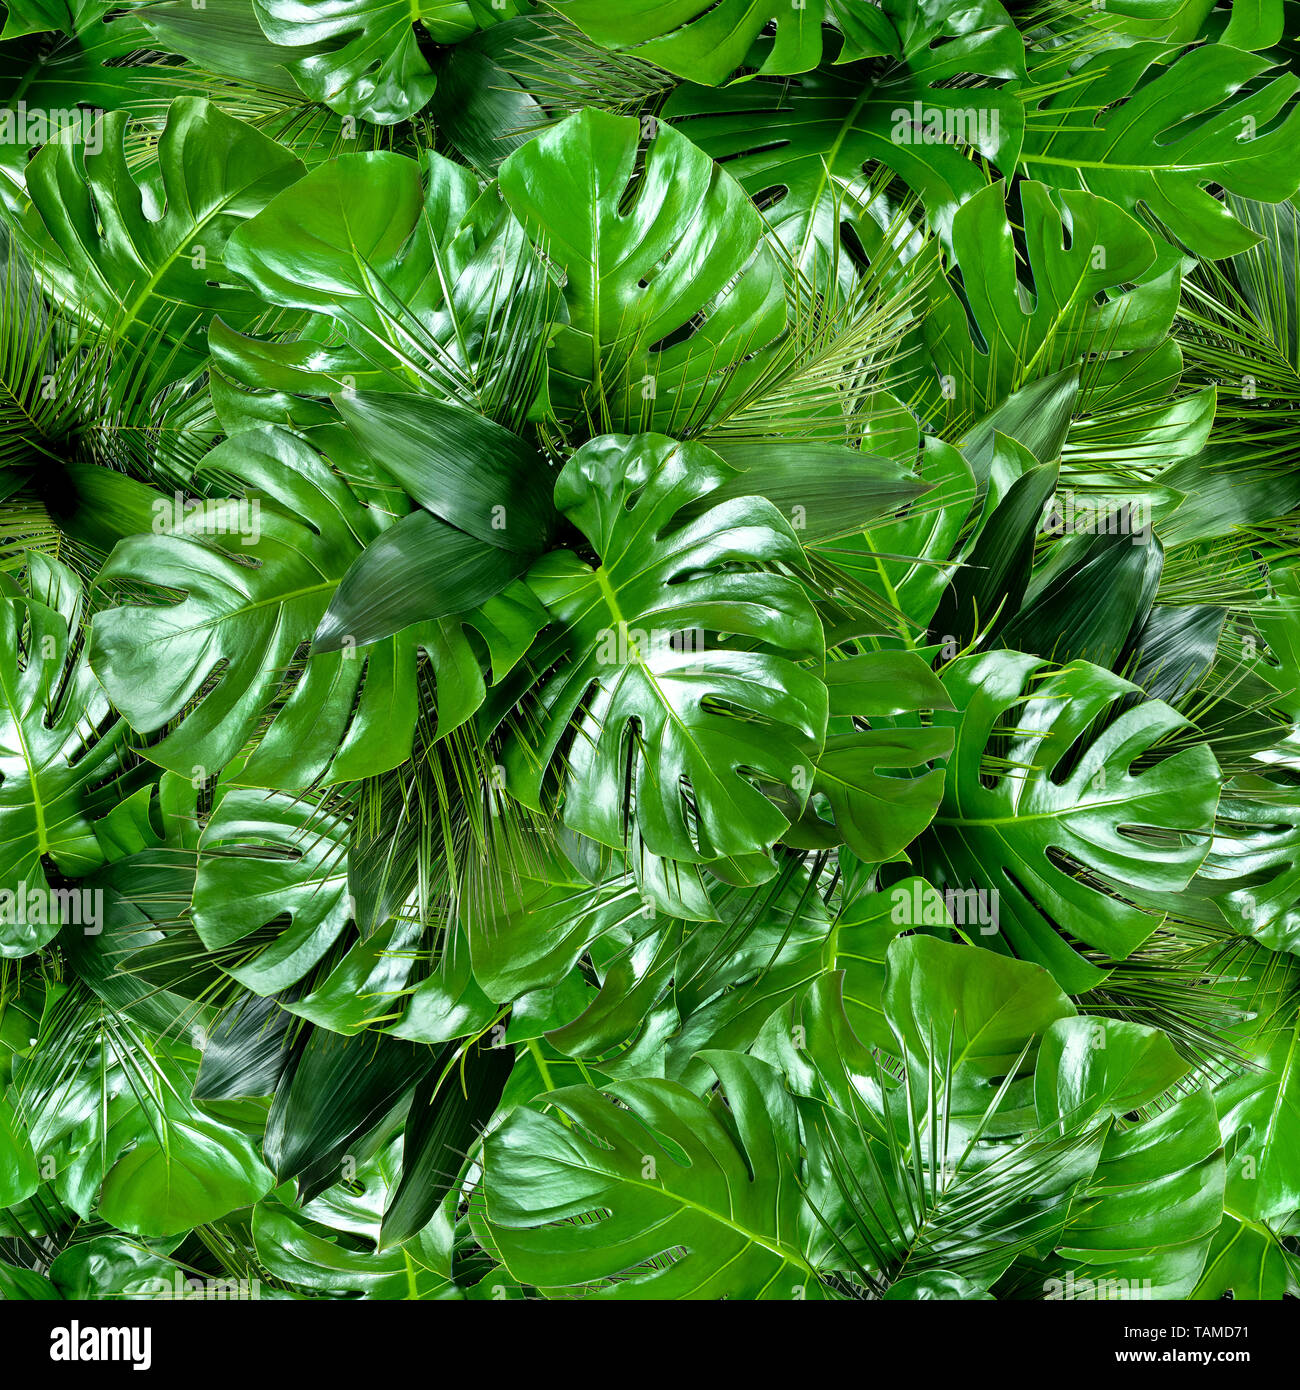 Seamless Green Tropical Jungle Plant Leaves Pattern Background Close Up Of Bouquets Of Various Fresh Palm And Monstera Greenery Summer Texture Stock Photo Alamy If your going through a tough time whether it be chemo or alopecia or just have thinning hair through some medications tropical leaves. https www alamy com seamless green tropical jungle plant leaves pattern background close up of bouquets of various fresh palm and monstera greenery summer texture image247541141 html